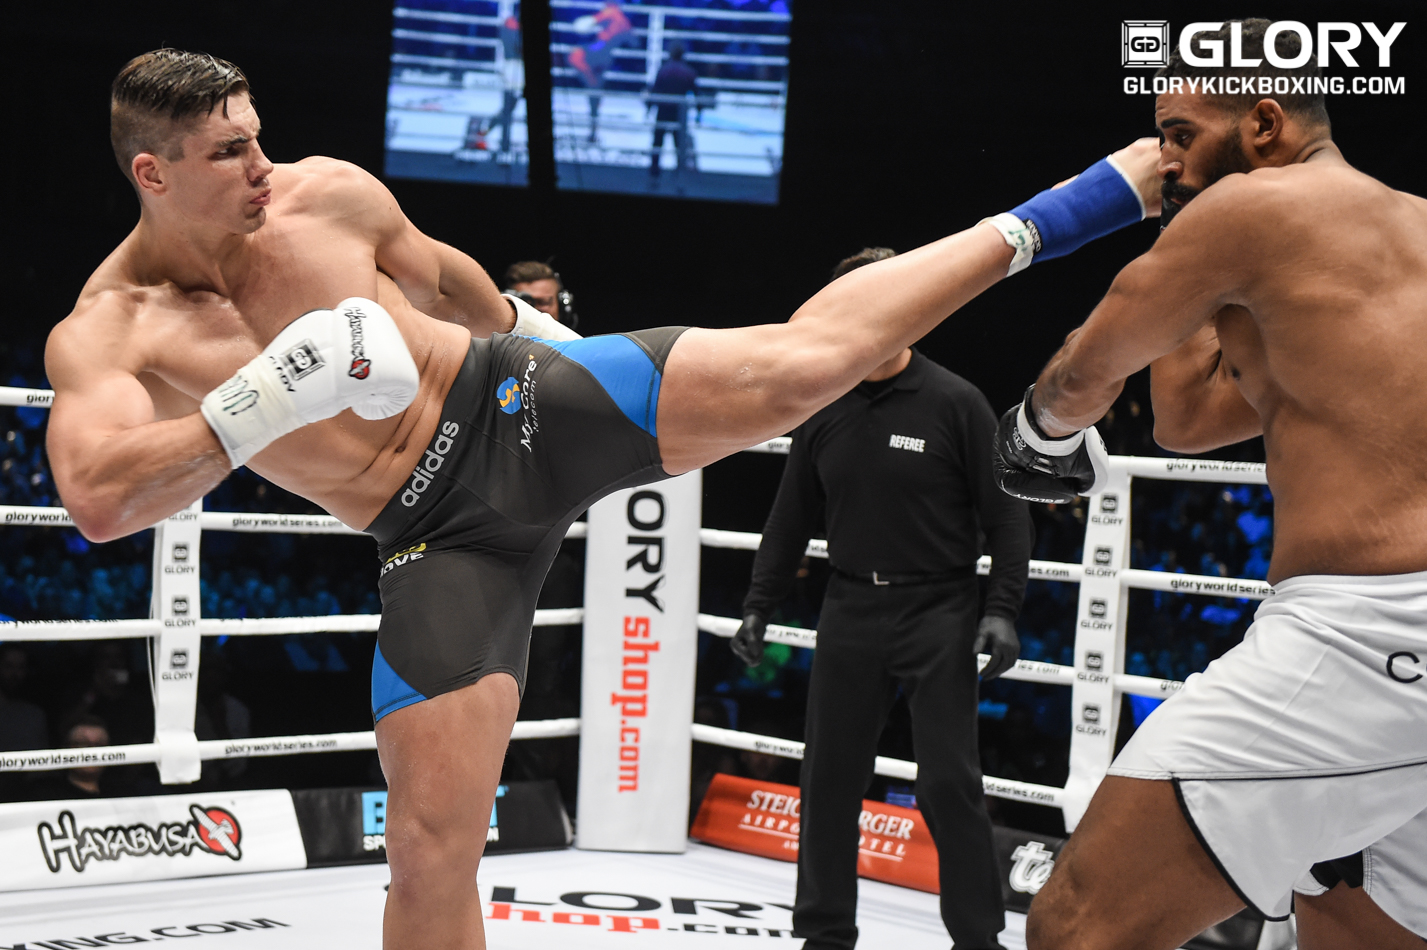 Rico Verhoeven Vs Ismael Lazaar Set For Glory 41 In Holland